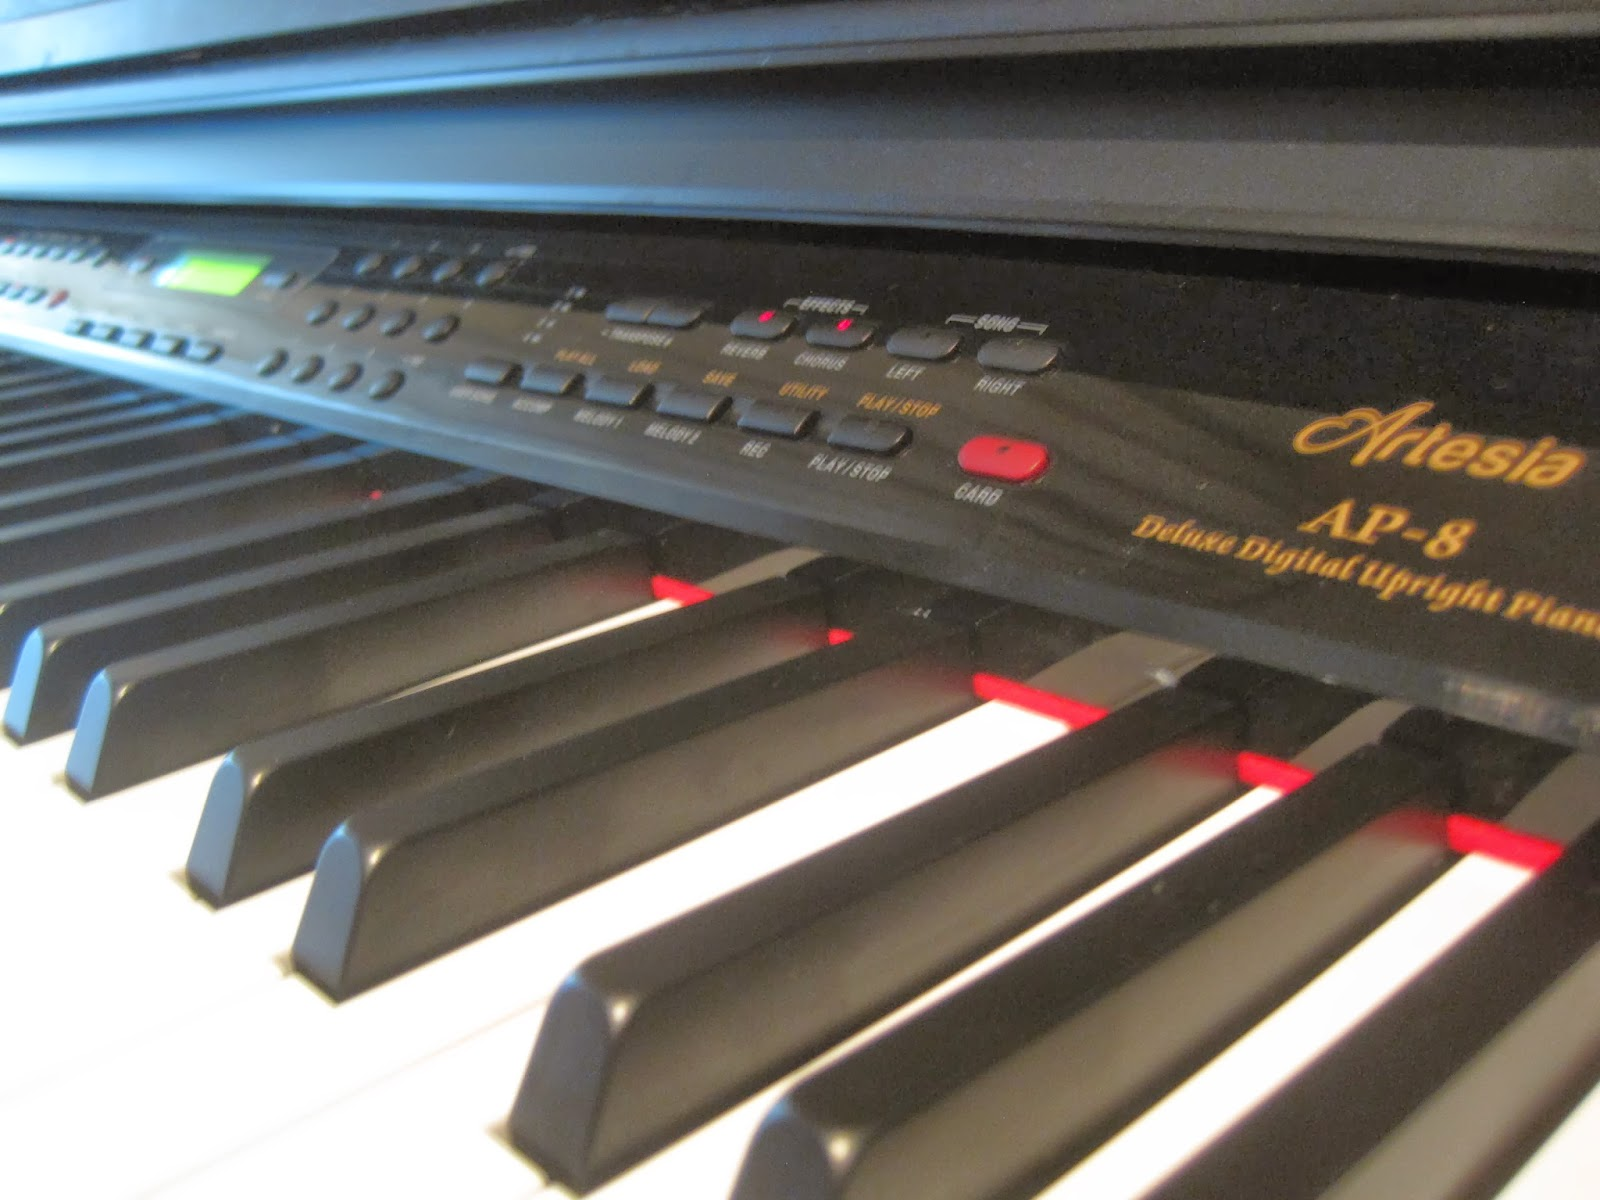 Artesia AP8 digital piano